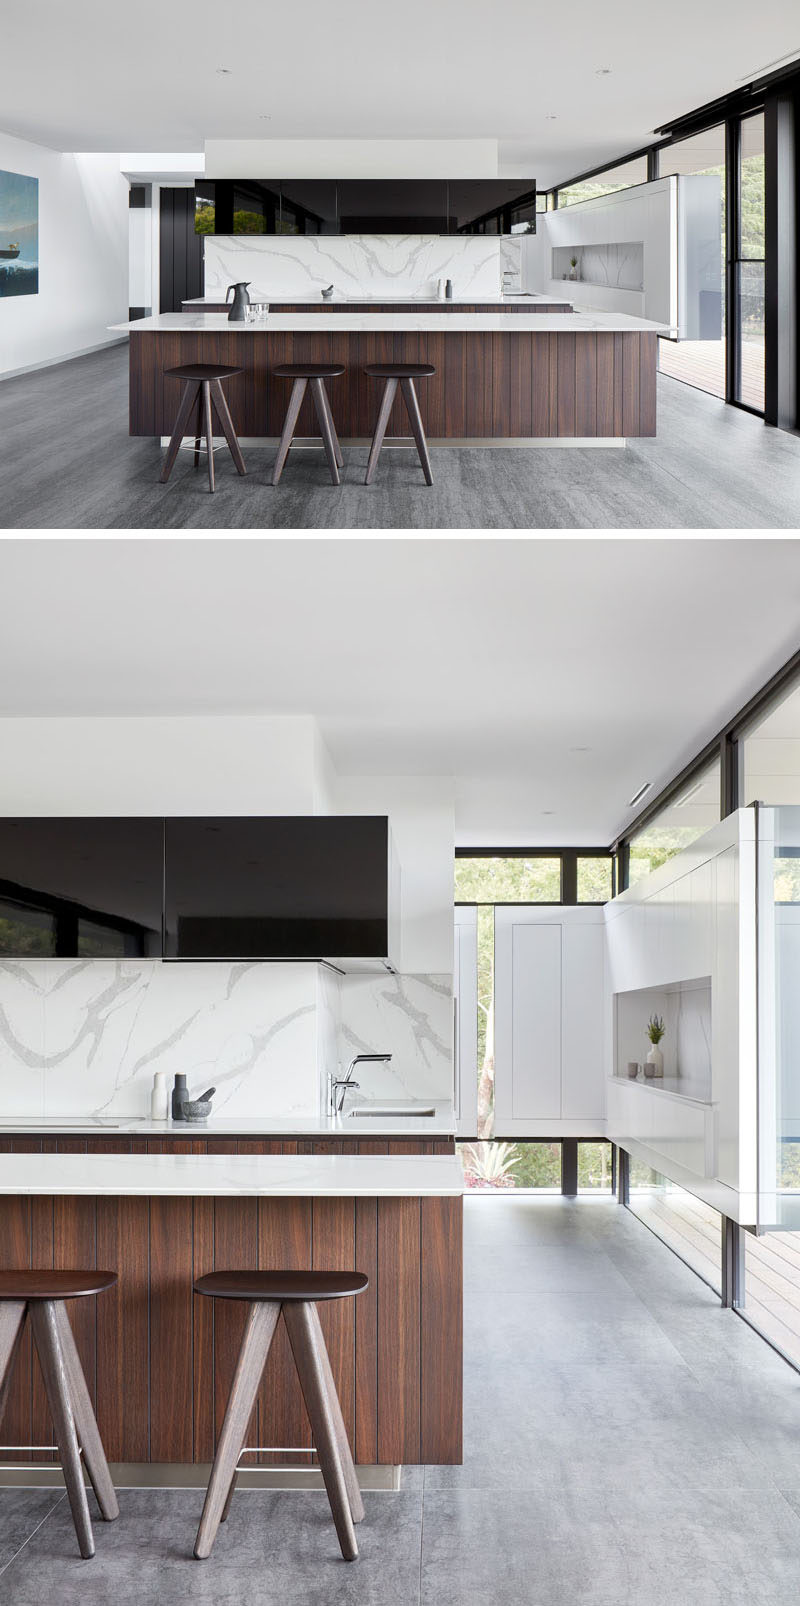 In this modern kitchen, bright white walls are contrasted by black design elements, like cabinetry and window frames, while the wood island adds a touch of warmth to the space. #ModernKitchen #KitchenDesign